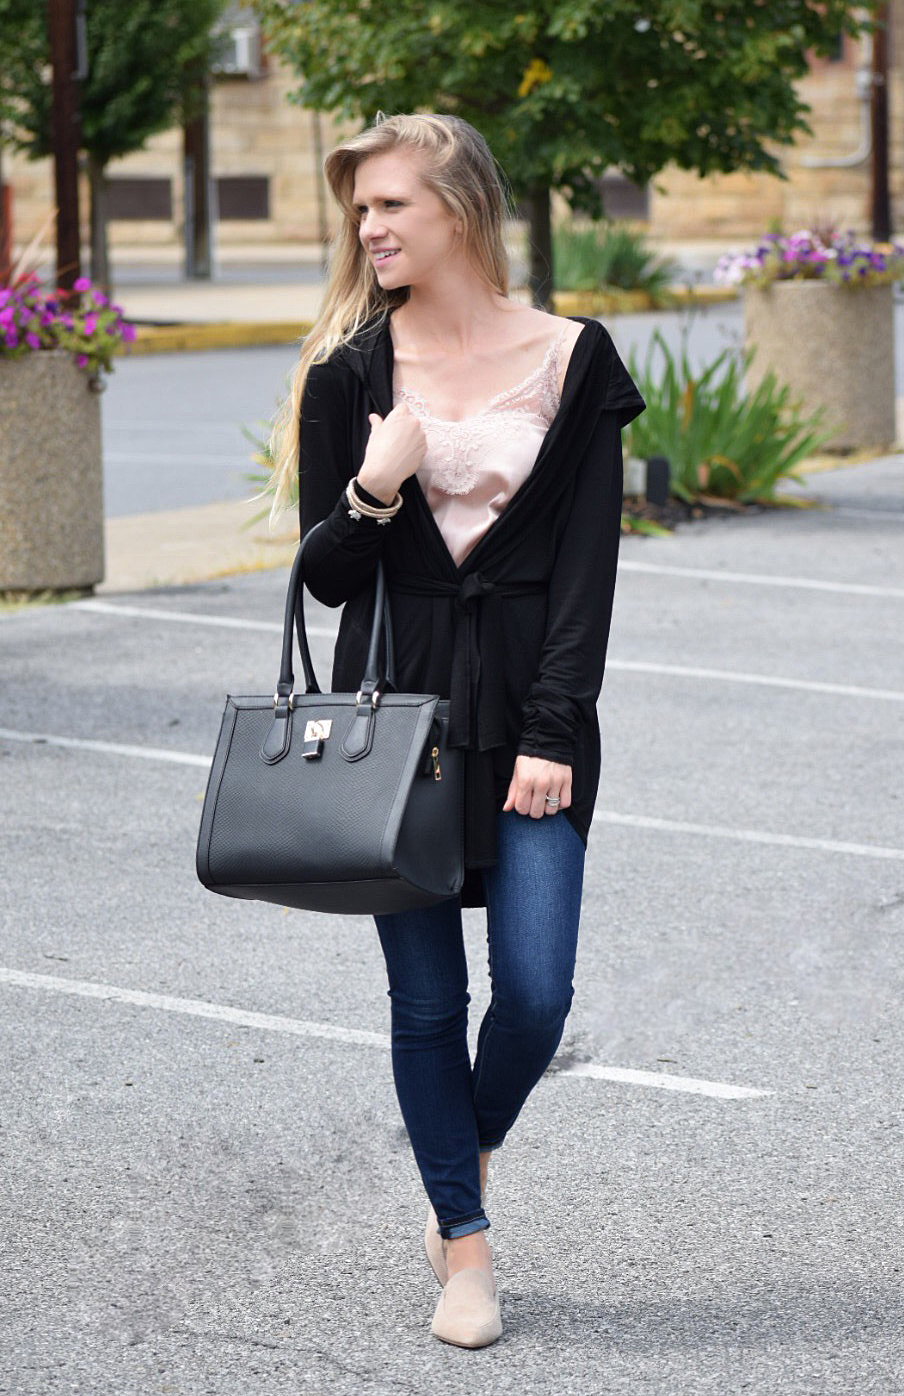 lace cami with black cardigan and jeans for fall fashion